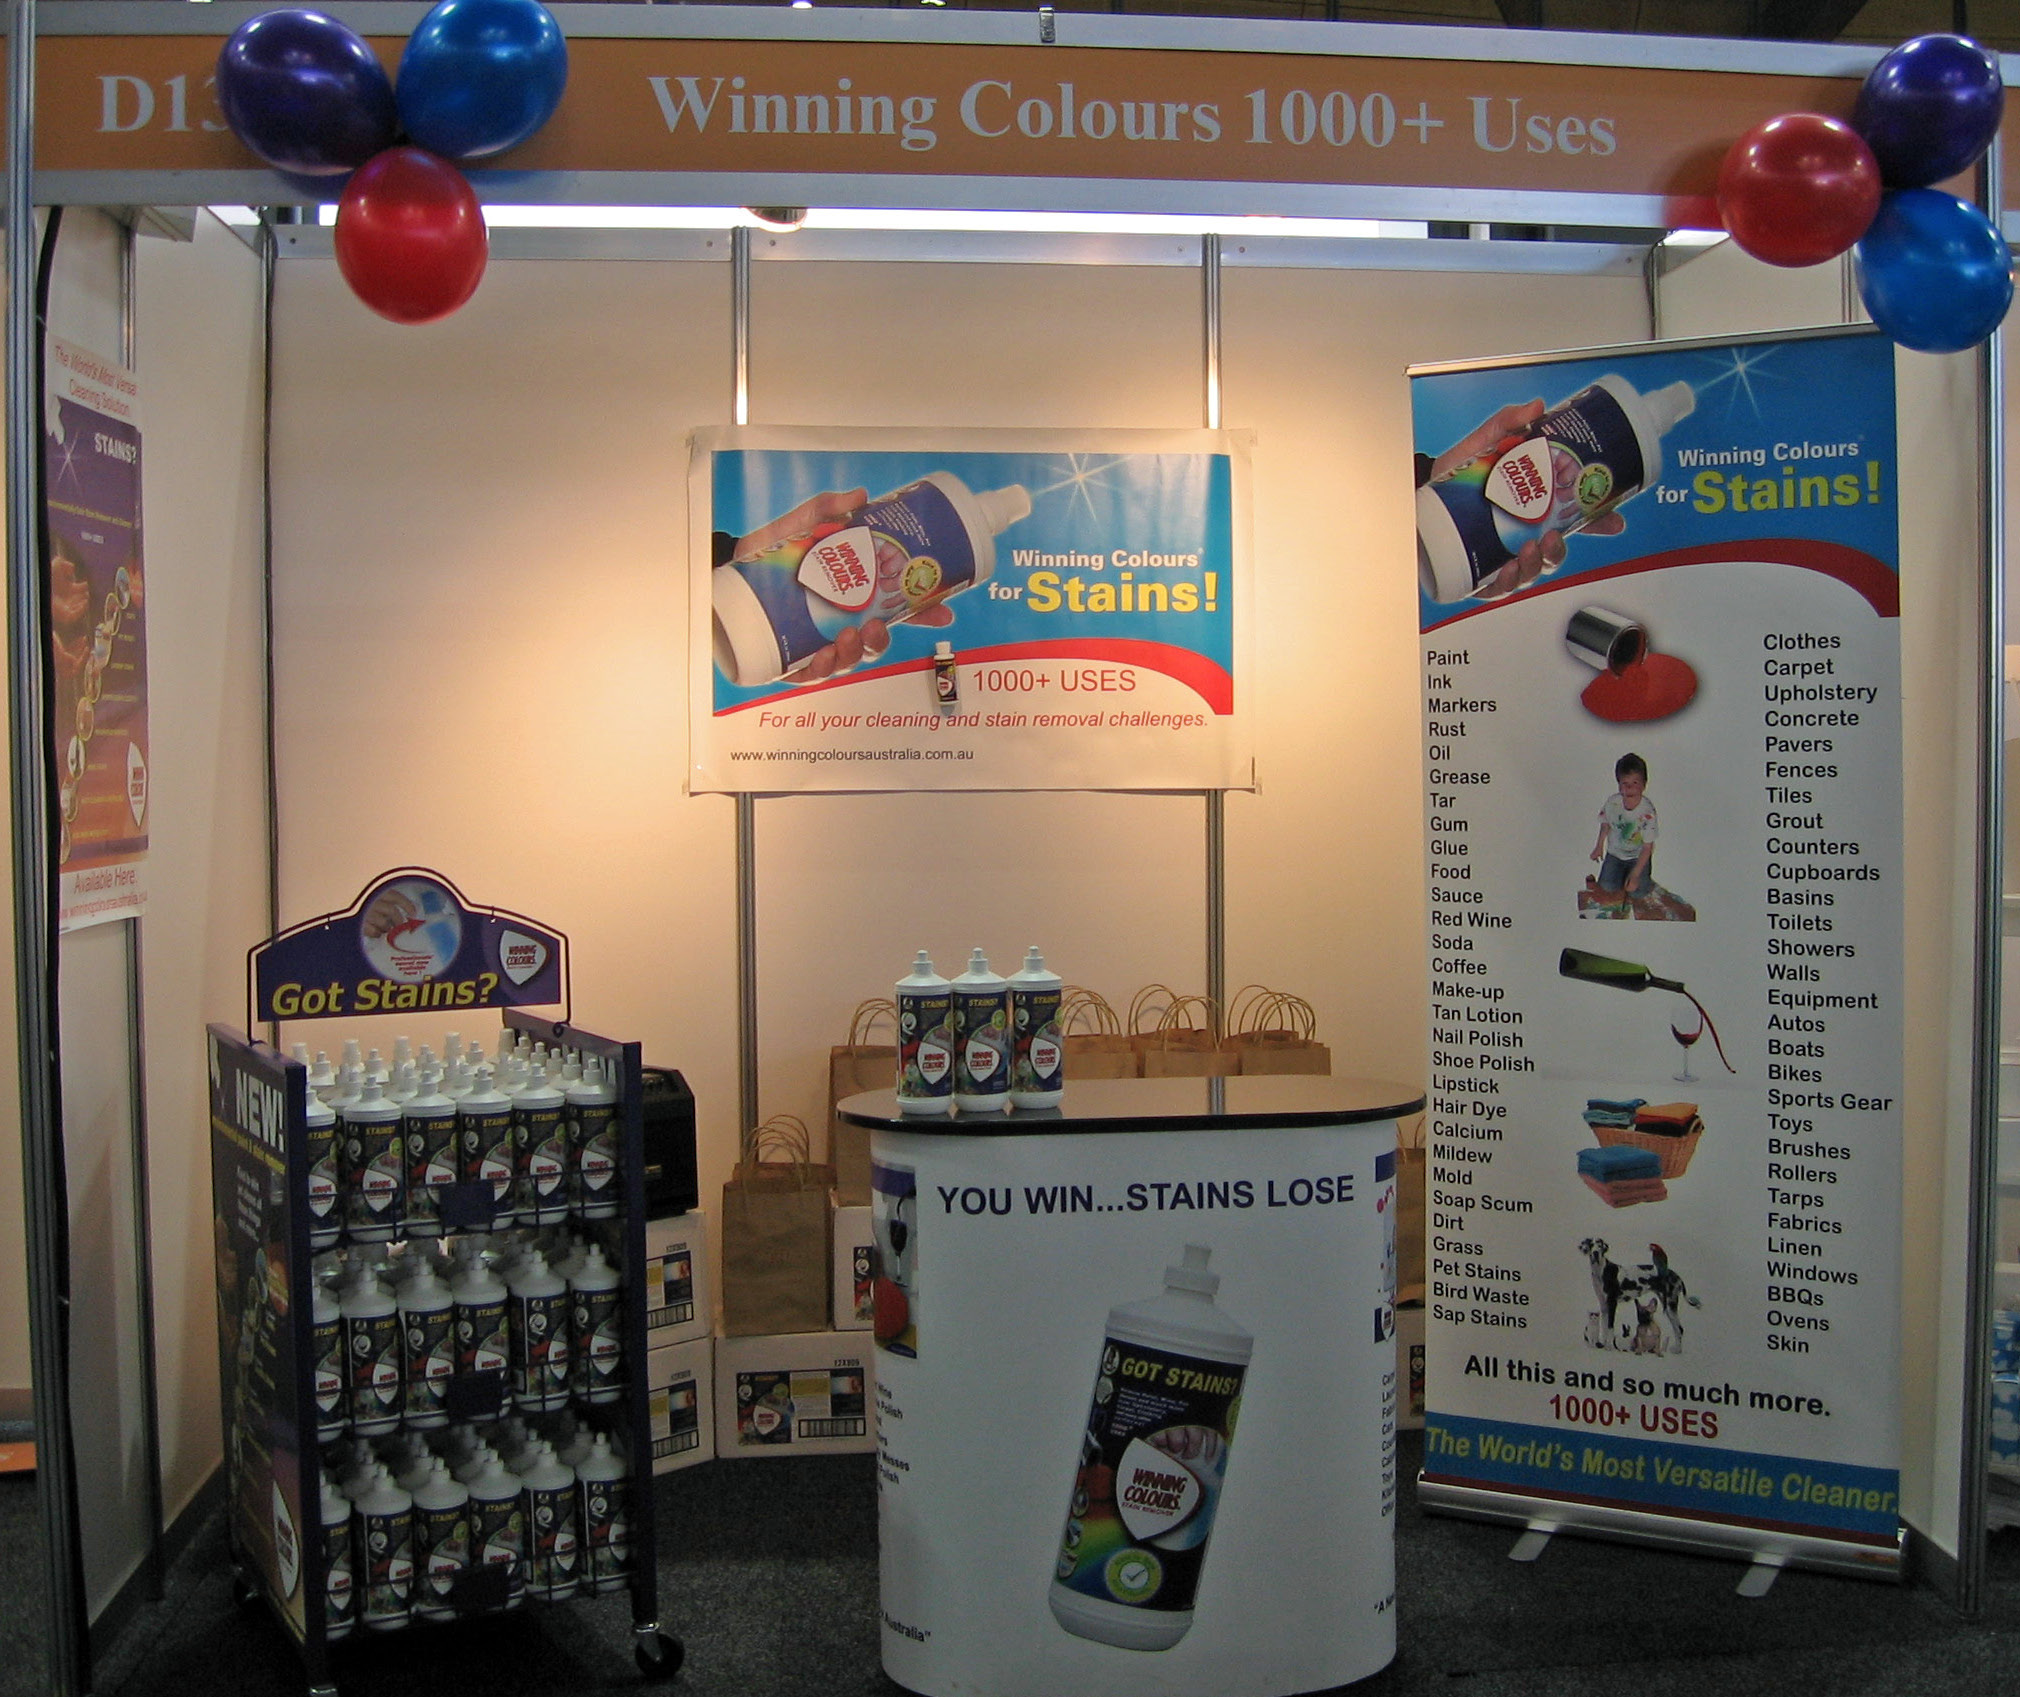 Winning Colours At Better Homes And Gardens Live Sydney Australia Winning Brands